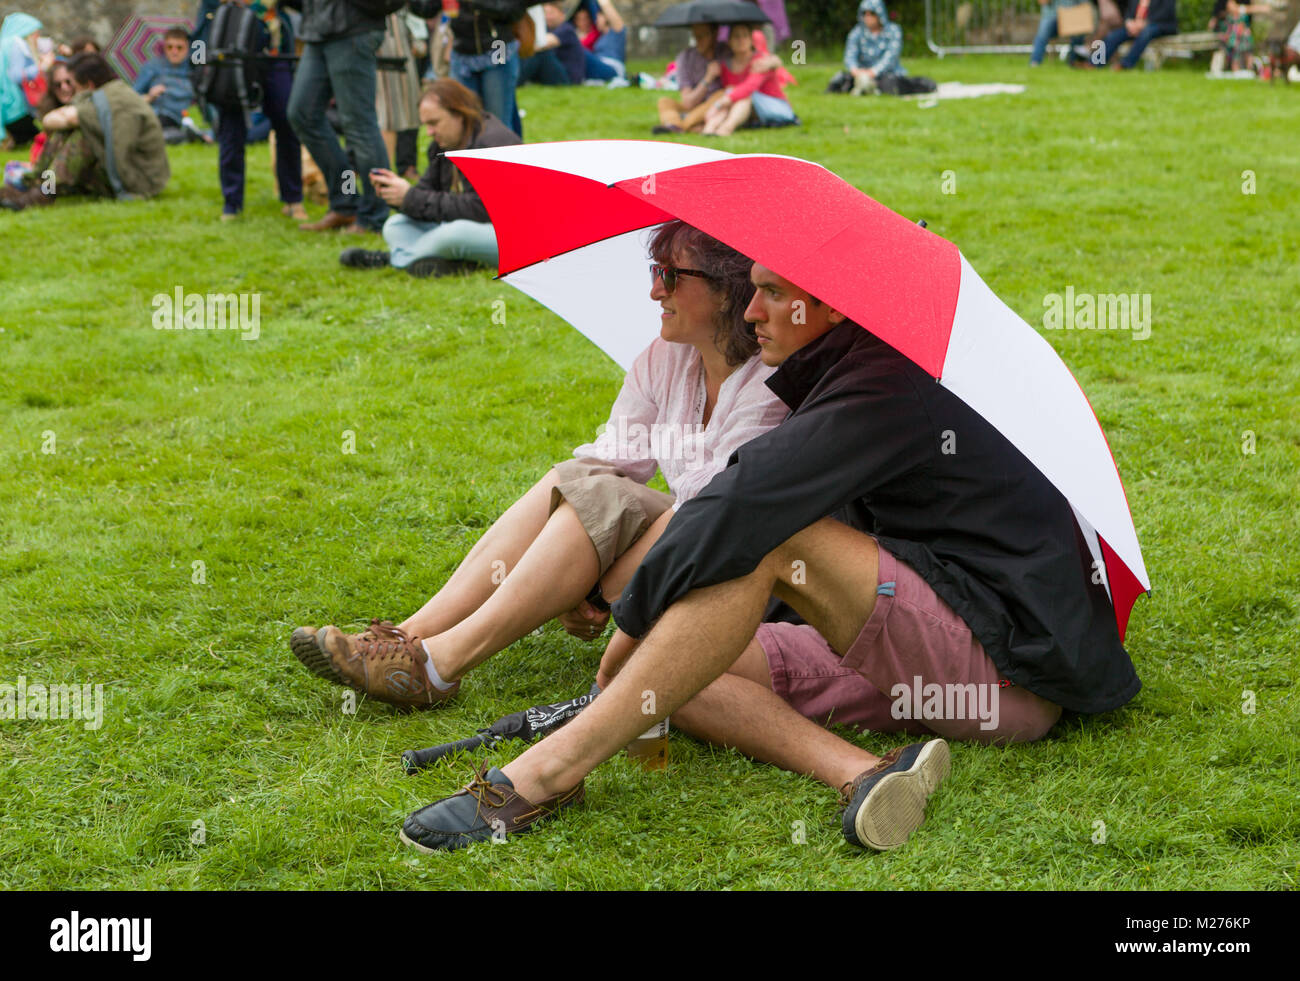 A couple in shorts shelter from the British summer weather under an umbrella whilst sitting on the grass at an outdoor - Stock Image